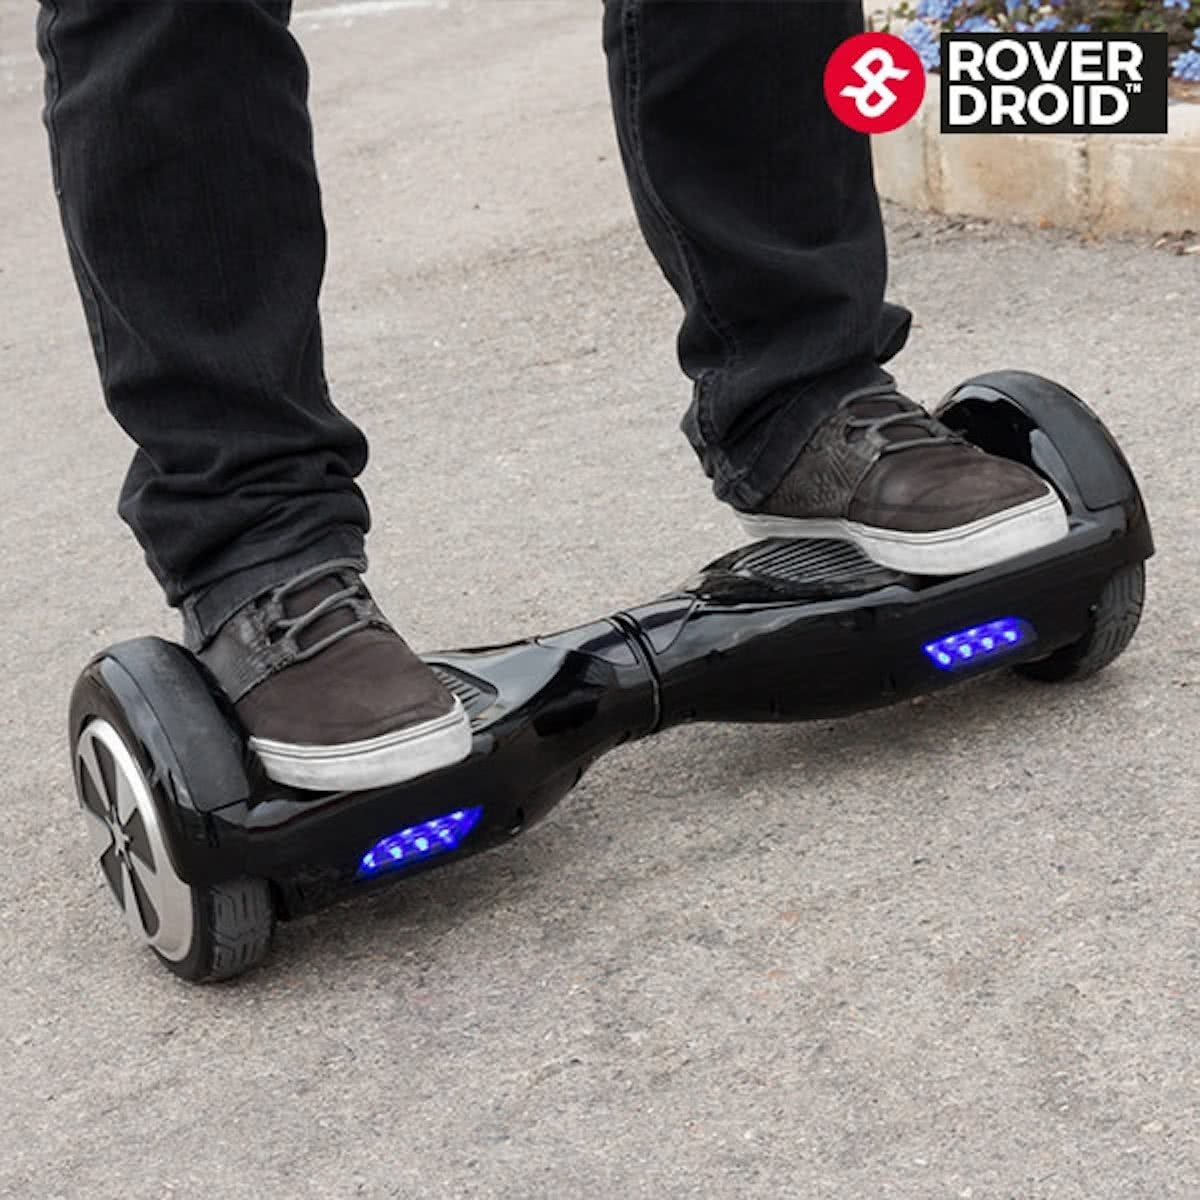 hoverboard oxboard zwart met blutooth led verlichting en. Black Bedroom Furniture Sets. Home Design Ideas